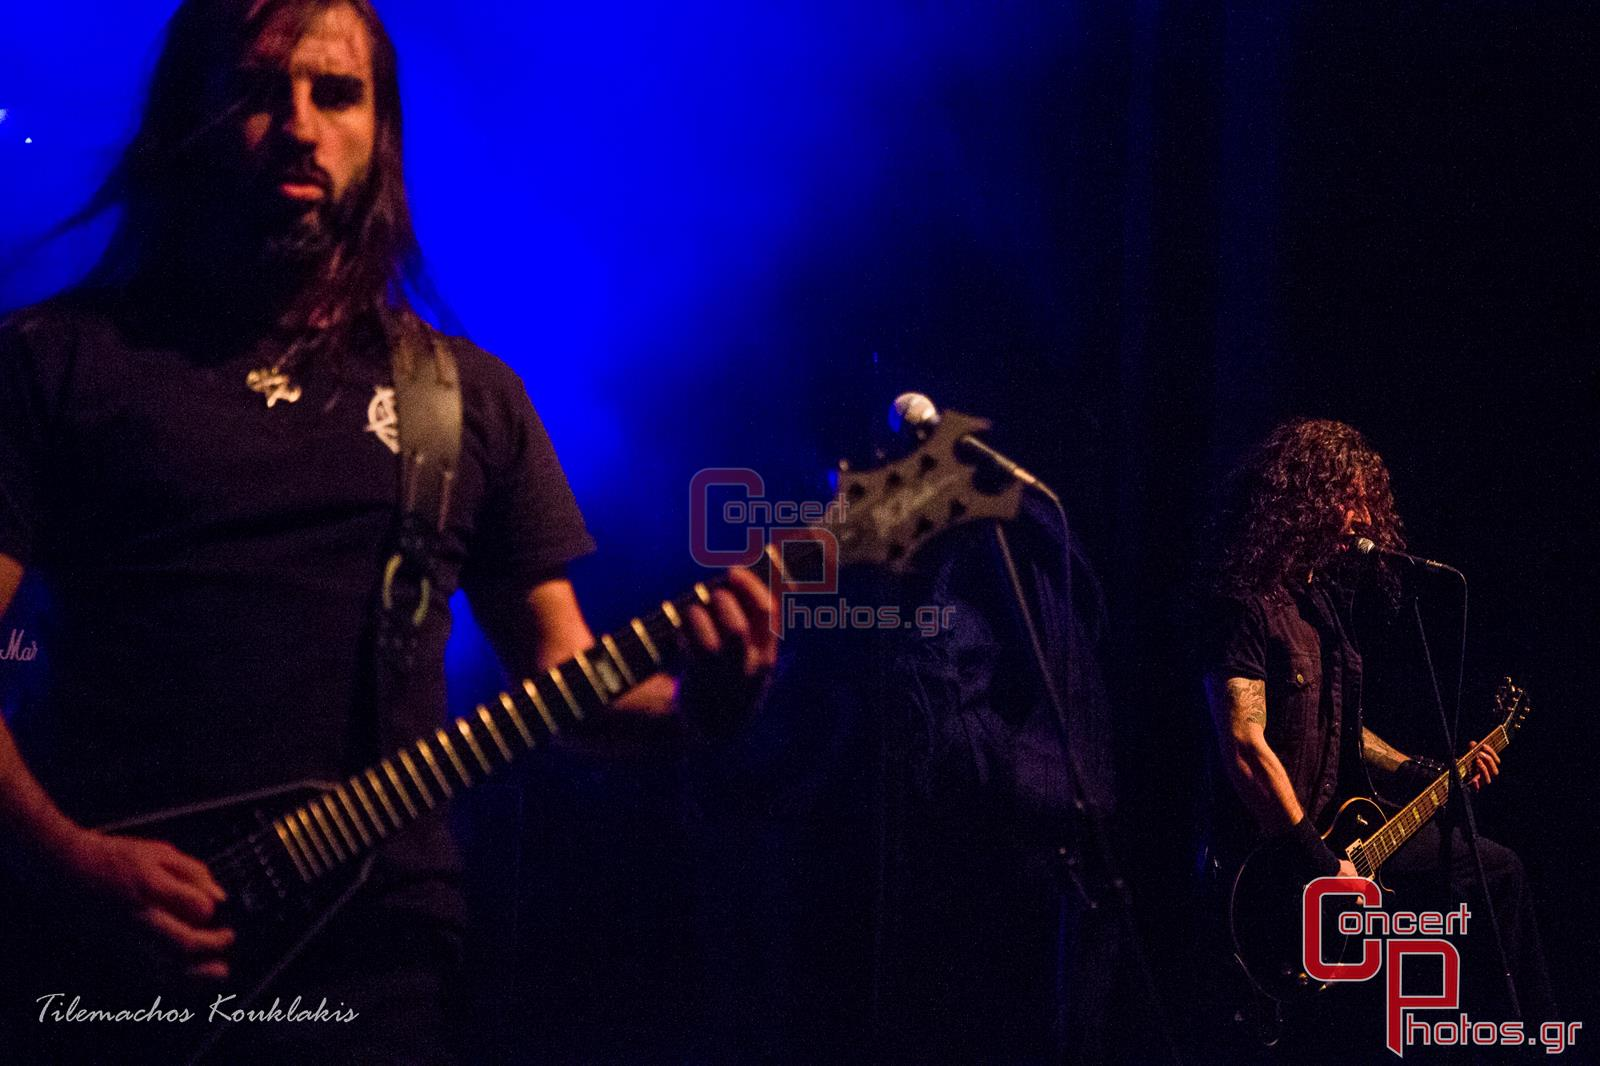 Rotting Christ-Rotting Christ photographer:  - ConcertPhotos-5114